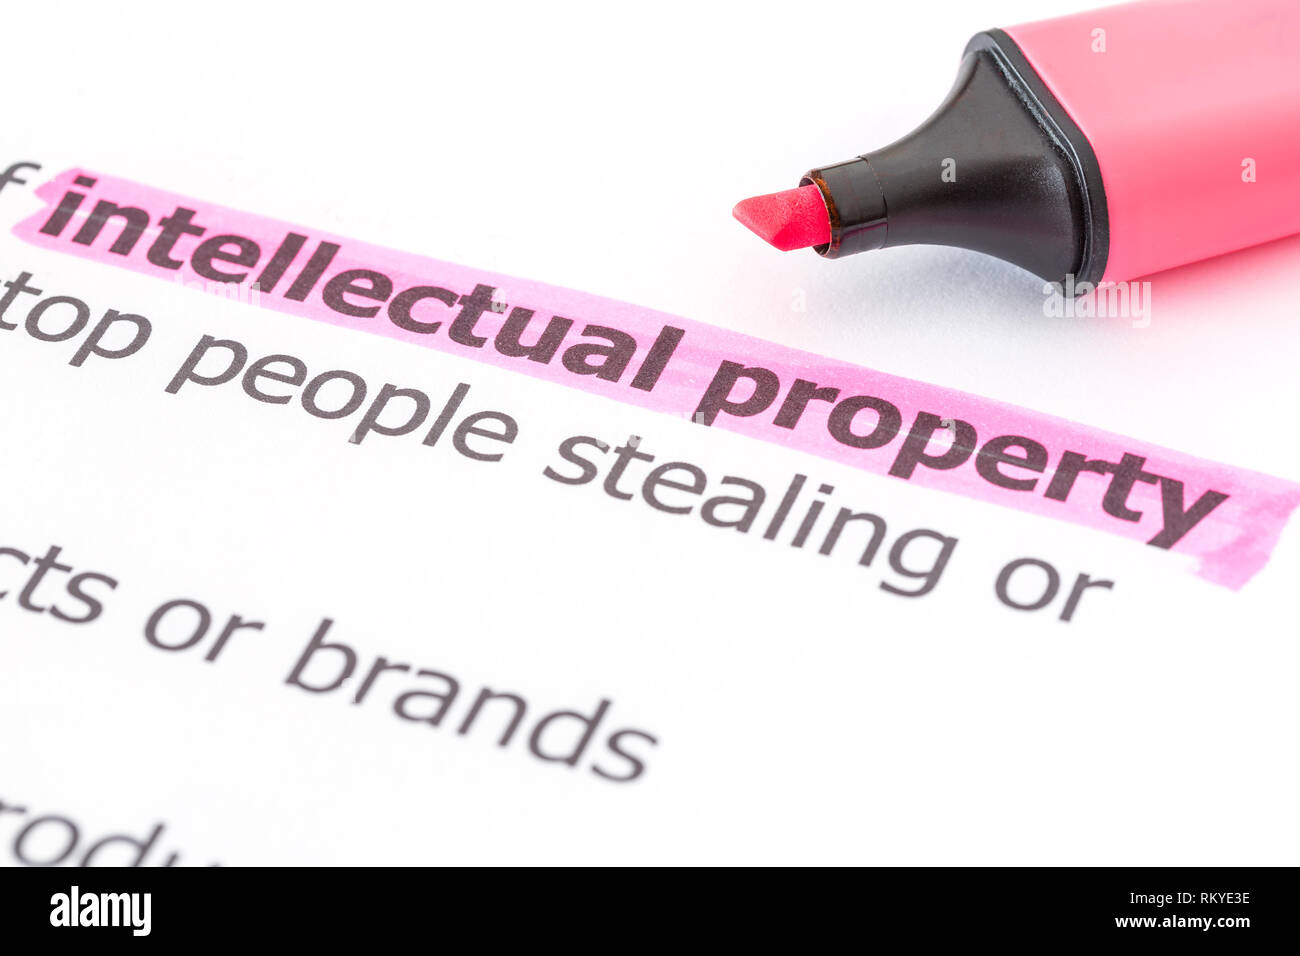 Intellectual property text on white paper with a highlight marker - Stock Image